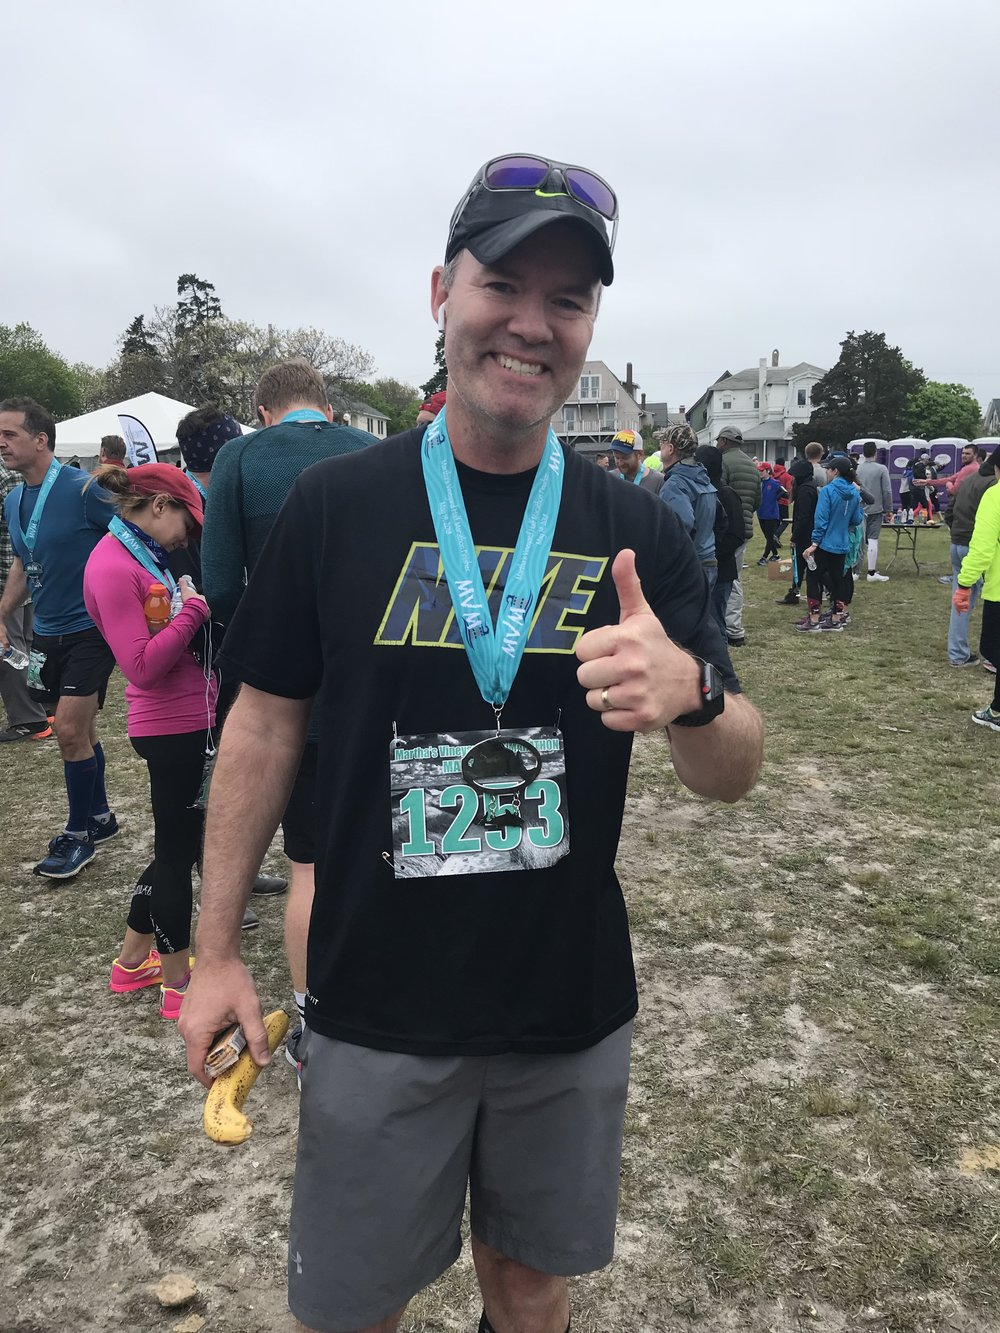 """I ran the MV 1/2 marathon and it was a great experience!  The course was relatively flat and scenic, especially the last few miles along State Beach. Plenty of in-race and post-race refreshments. And, the race logistics were really well organized & executed.""  -Bill"